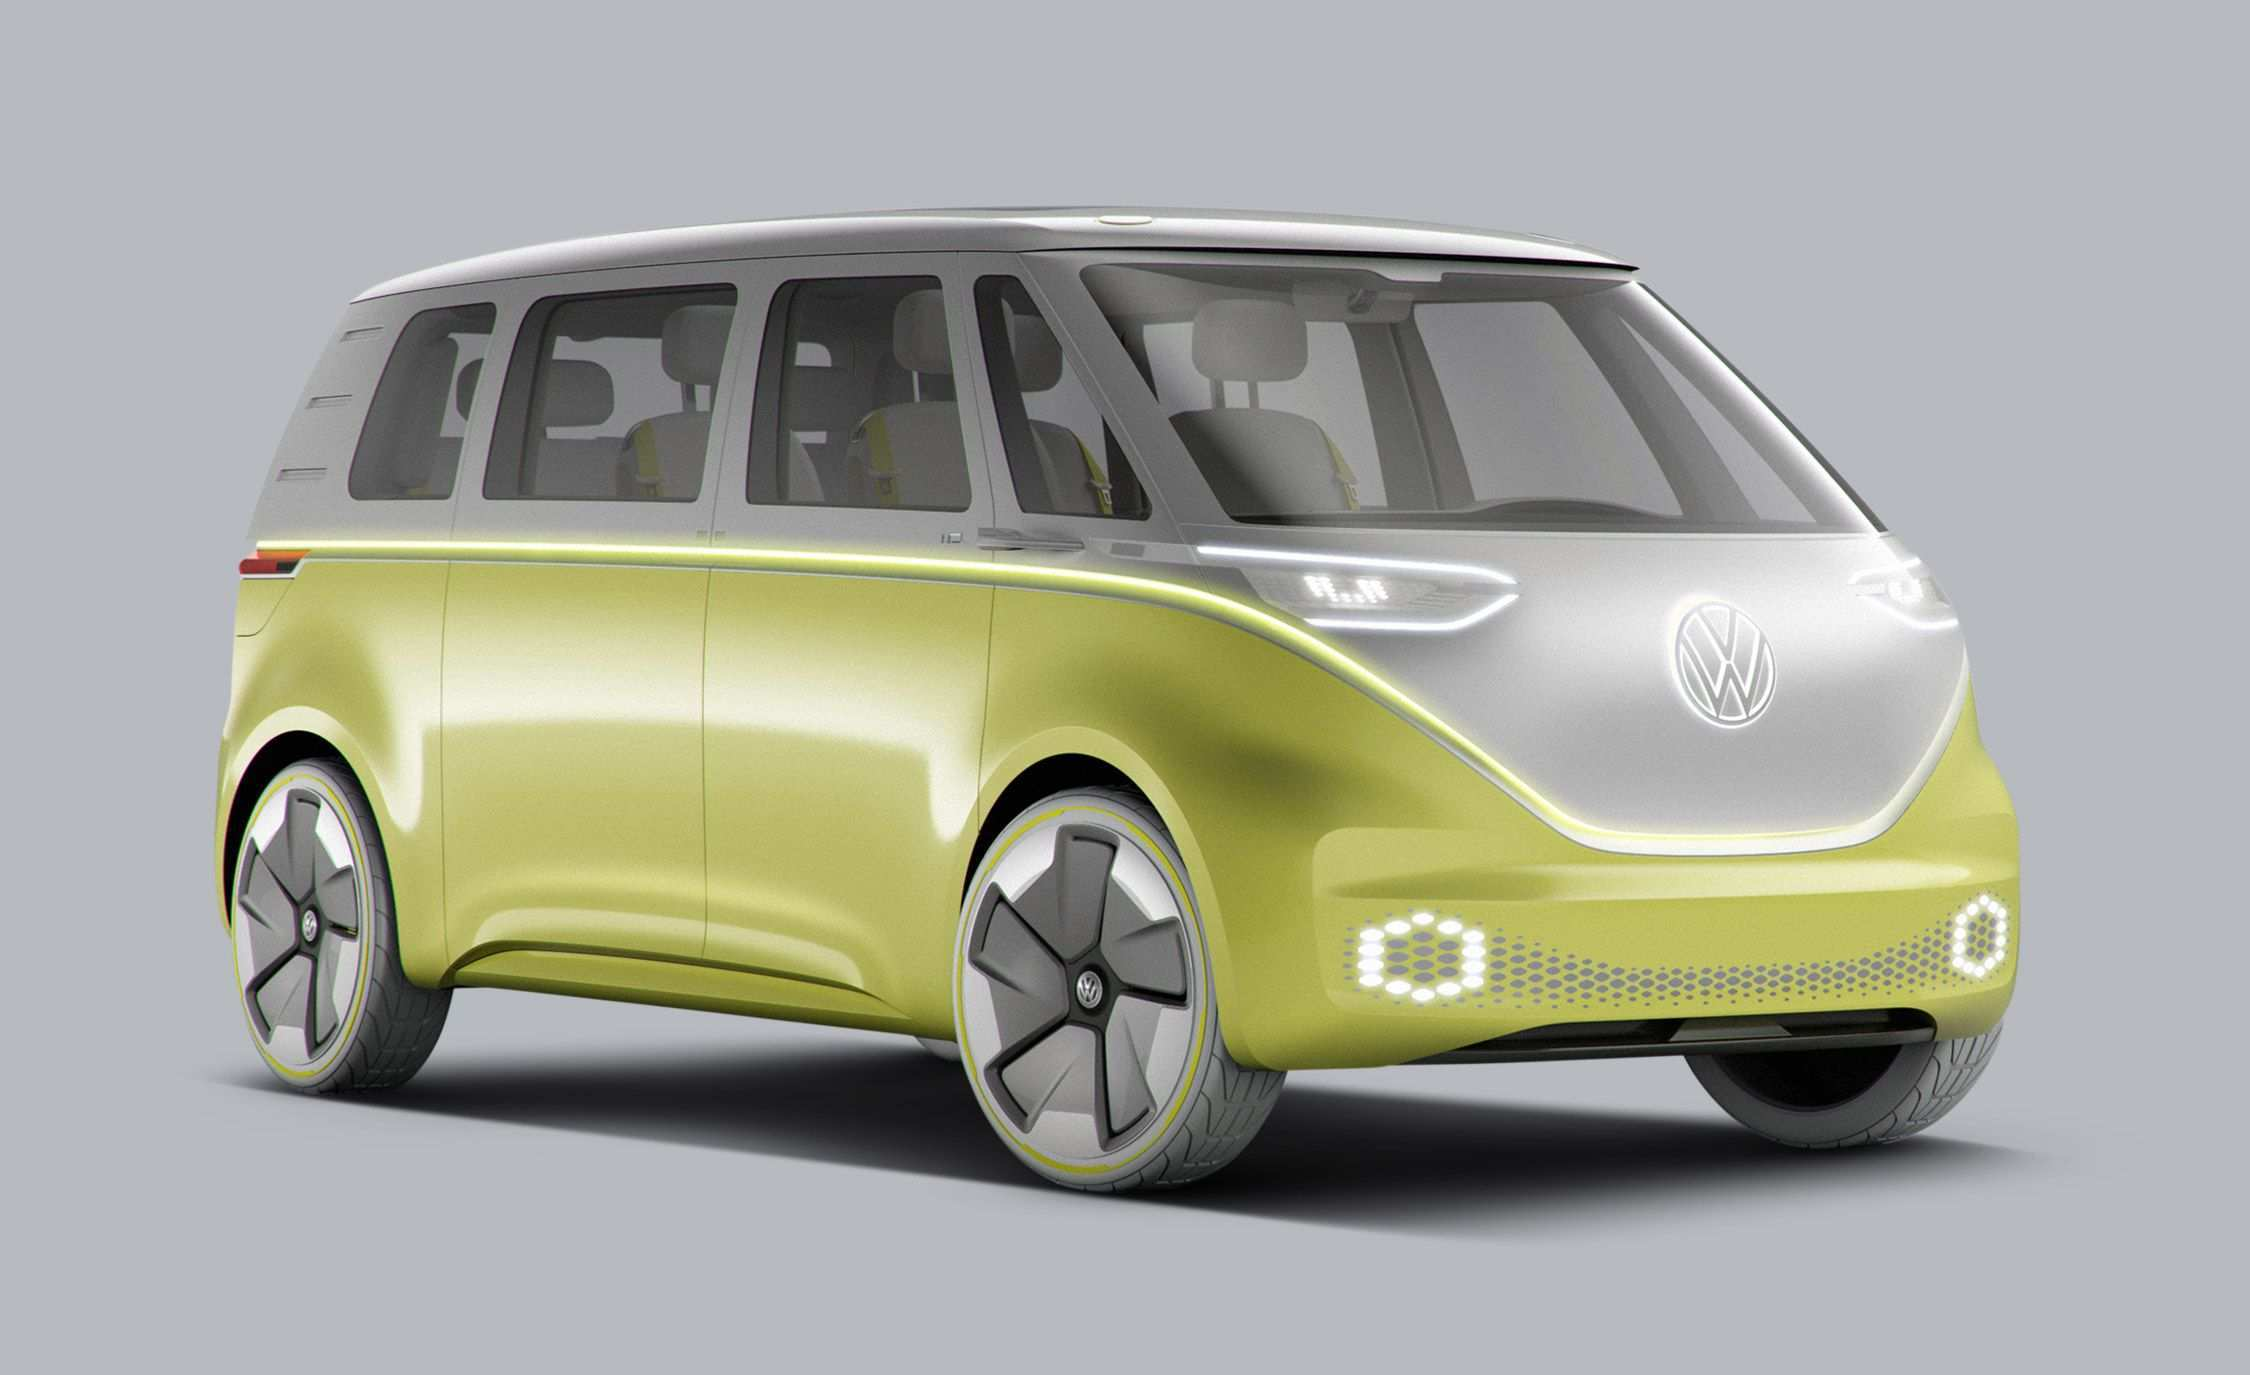 82 Best Review Volkswagen Van 2020 Price Model with Volkswagen Van 2020 Price